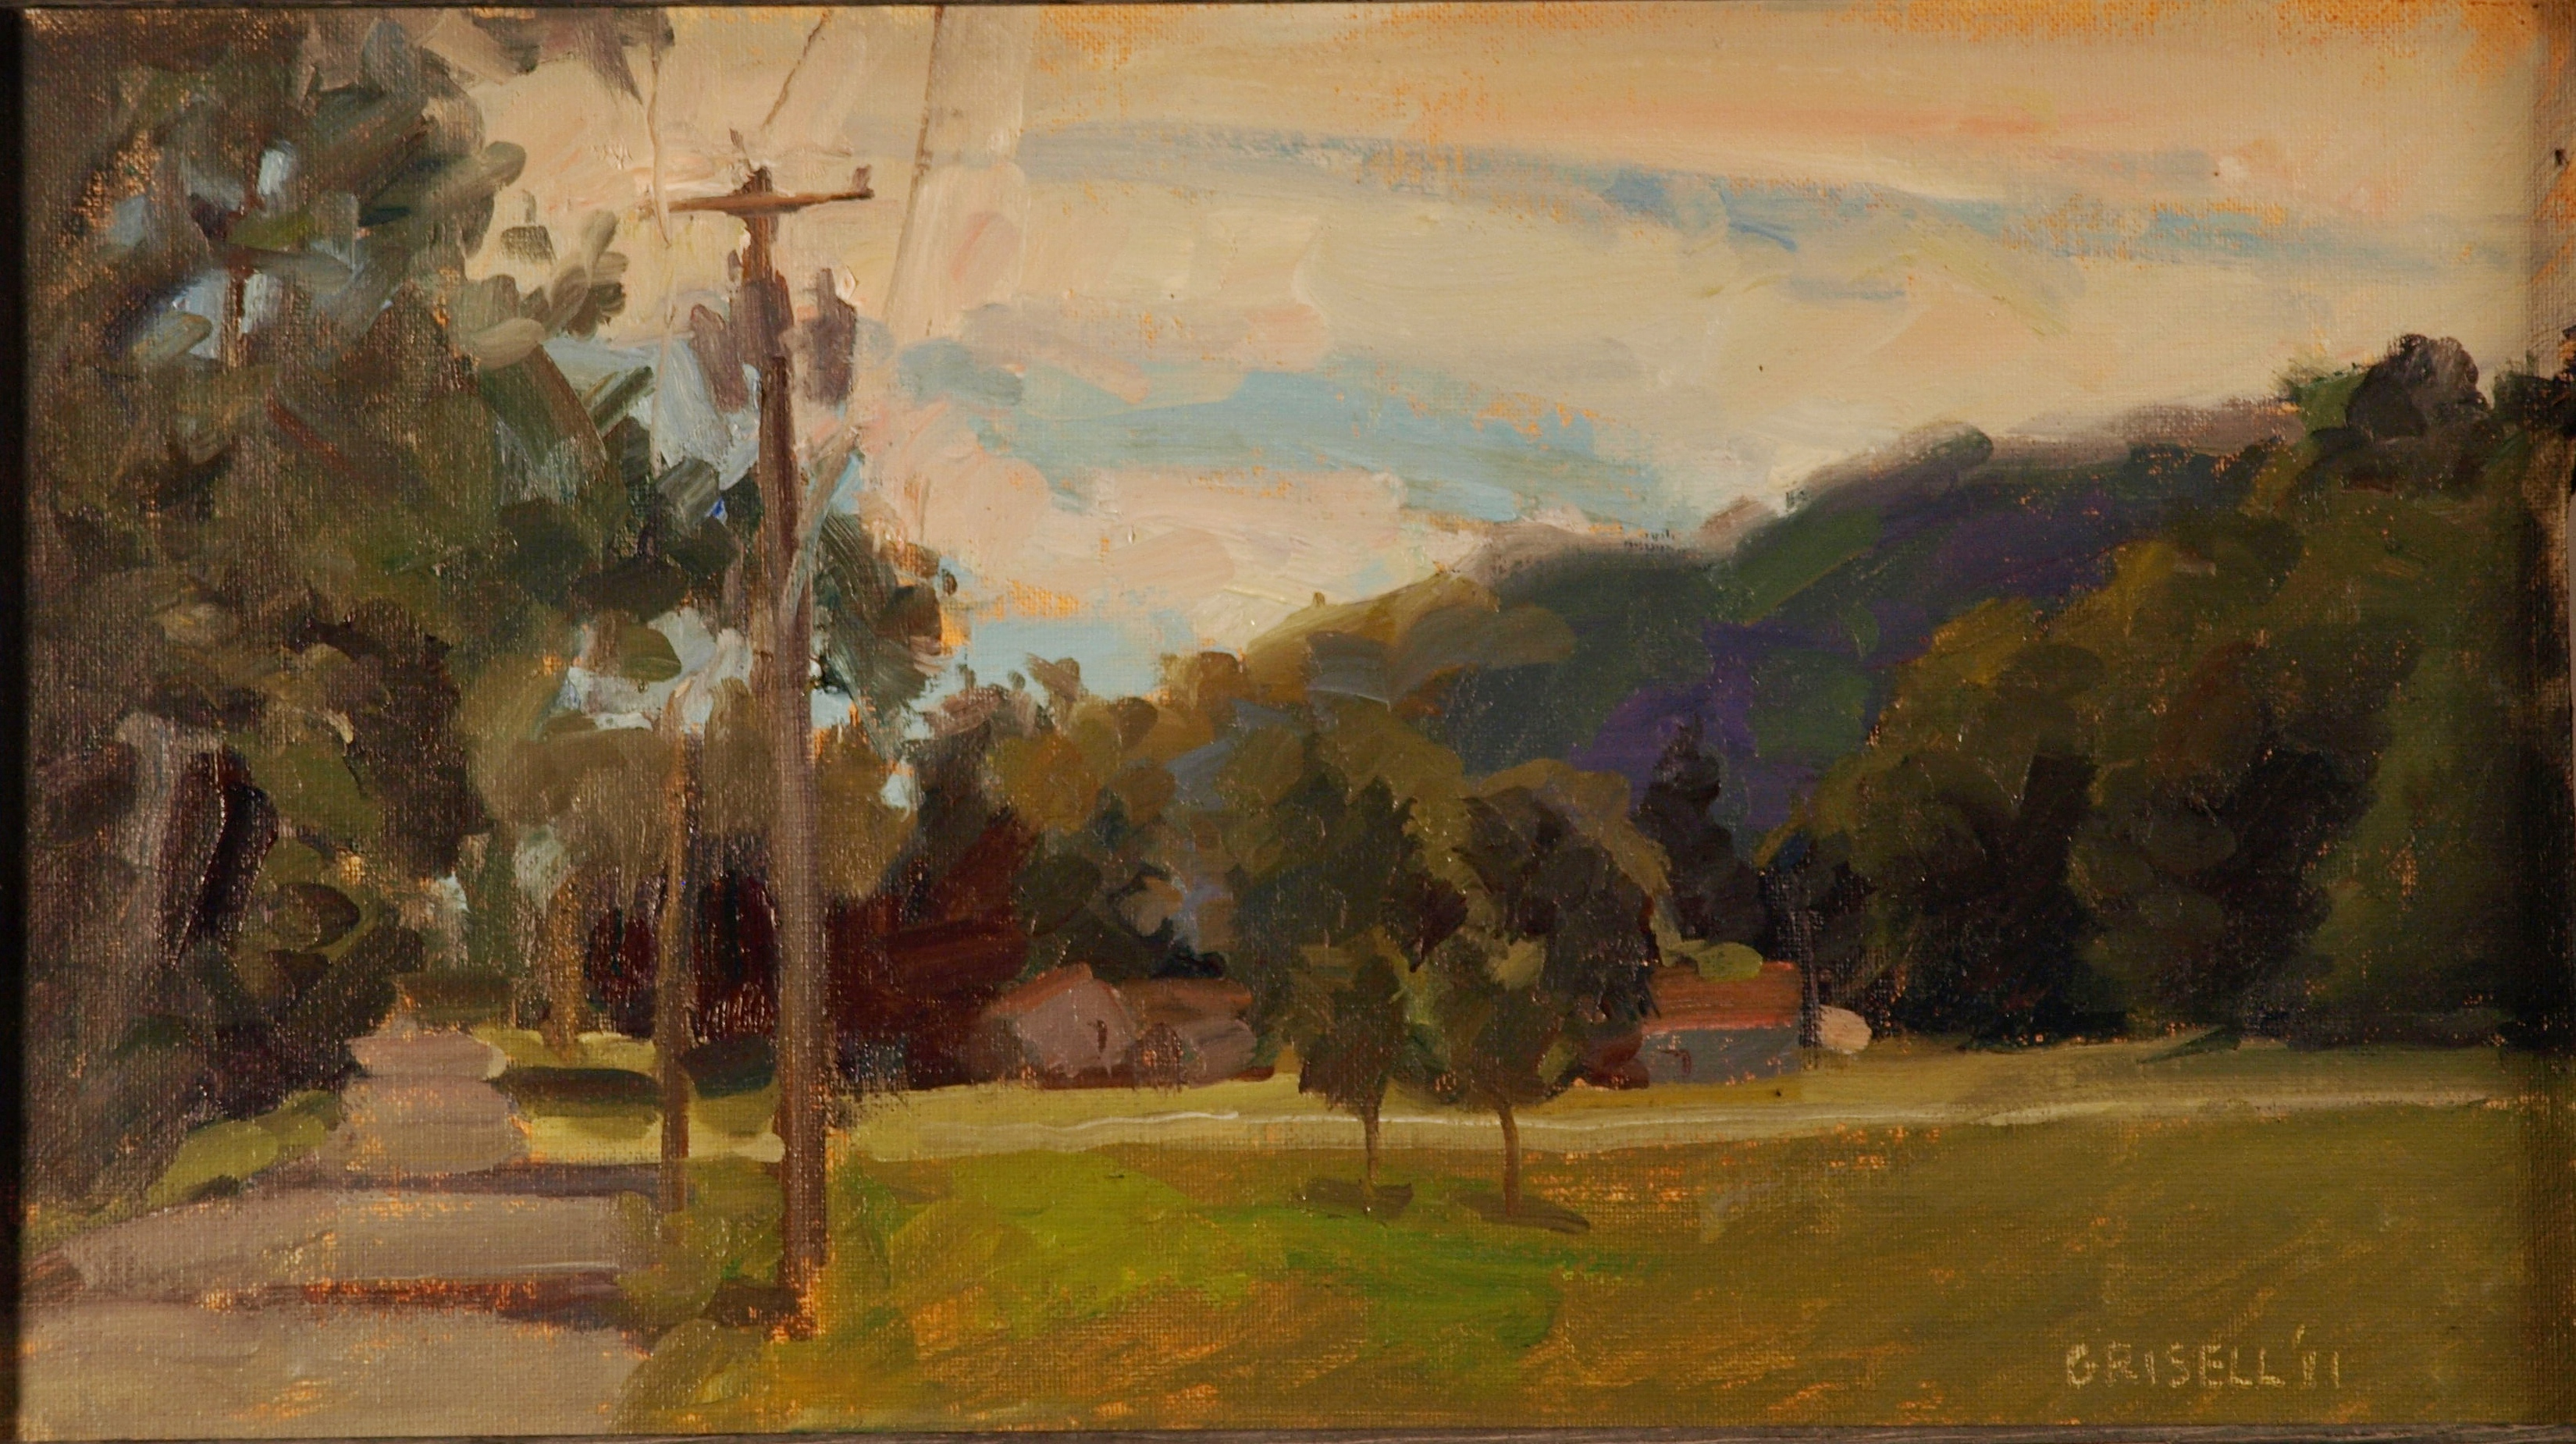 Skiff Mountain Road, Oil on Canvas on Panel, 9 x 16 Inches, by Susan Grisell, $250